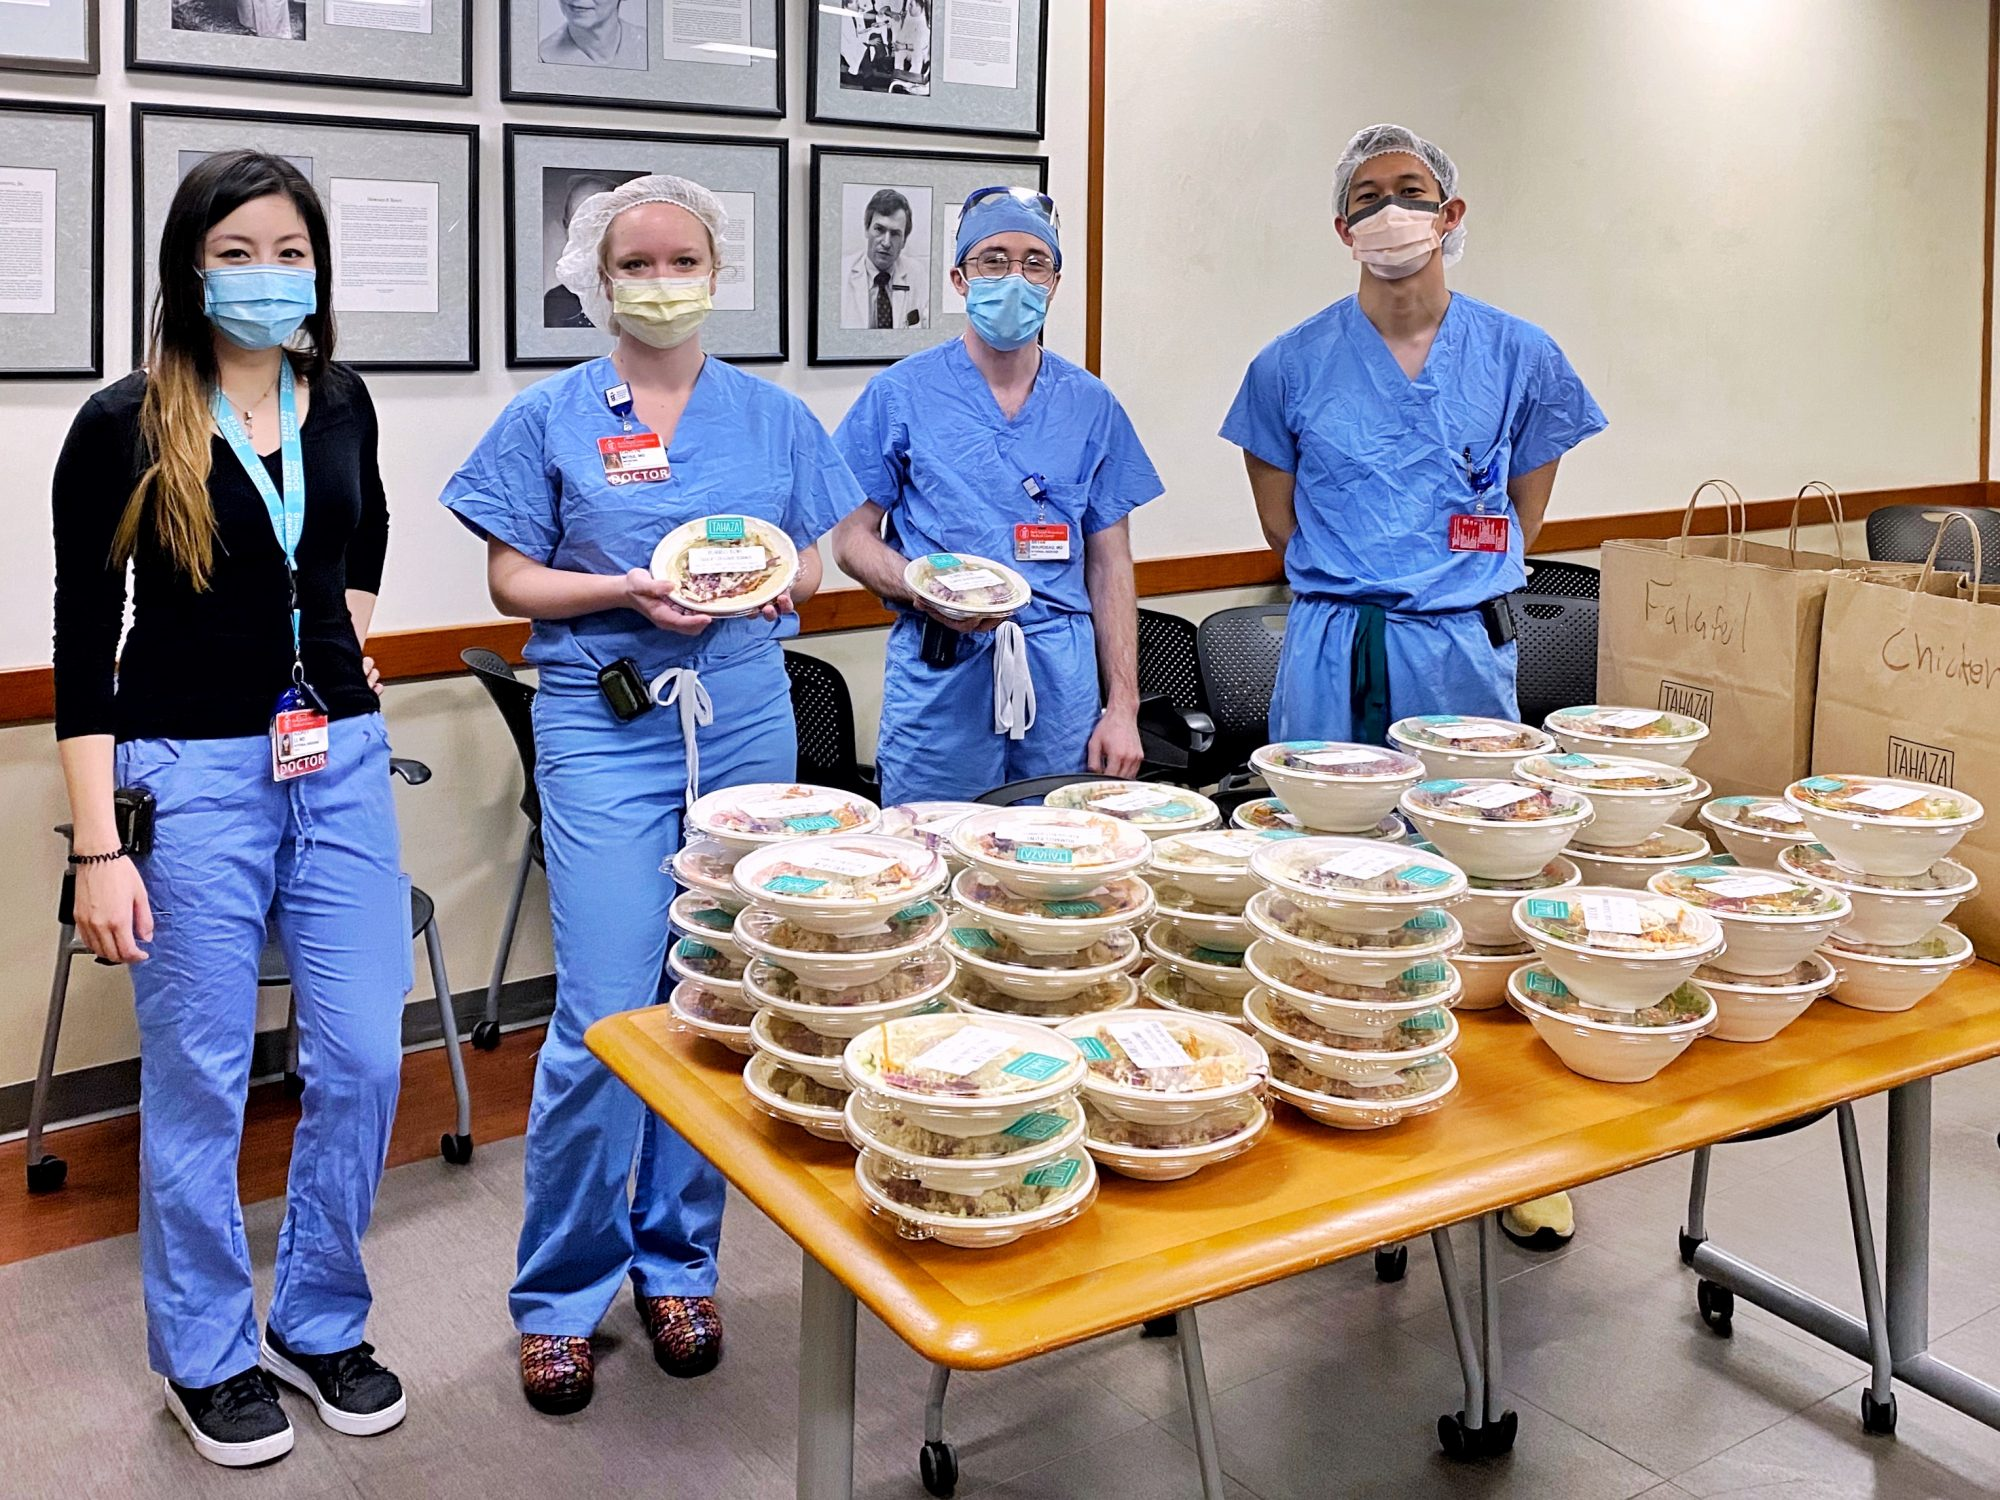 Catering Service Is Donating Free Catering to Hospital Workers